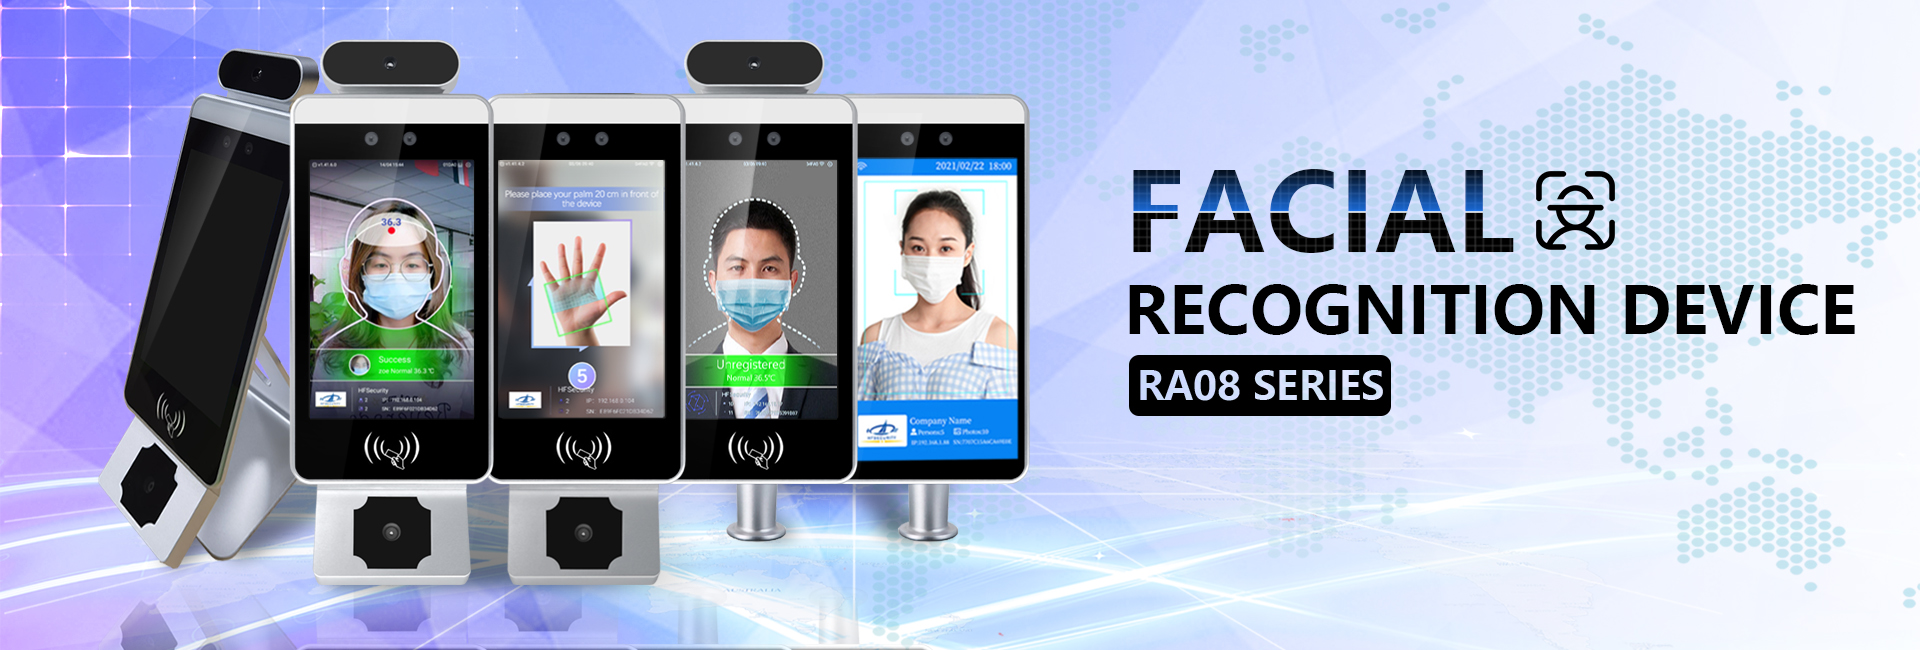 HFSecurity Biometric Face Recognition Device